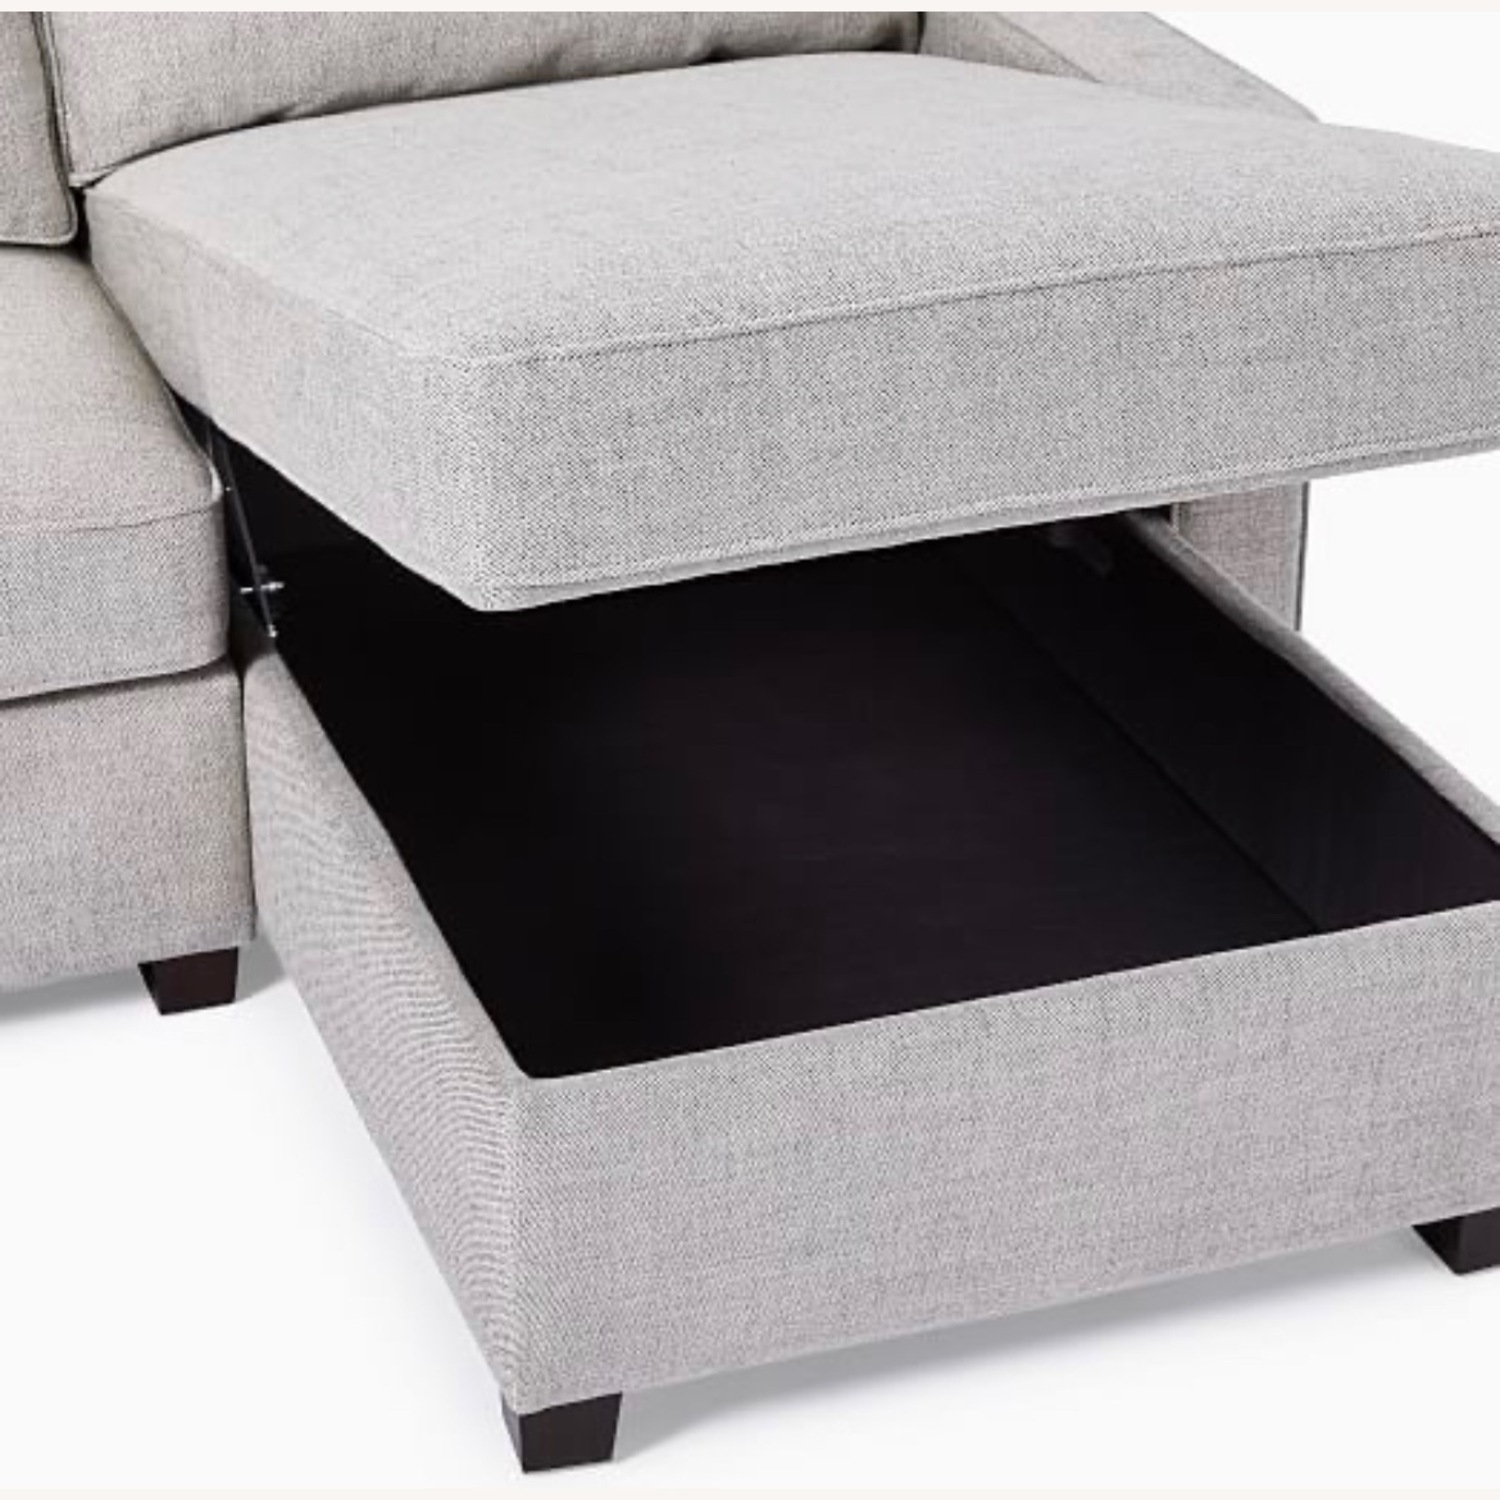 West Elm Henry Sleeper Sofa with Storage Chaise - image-1